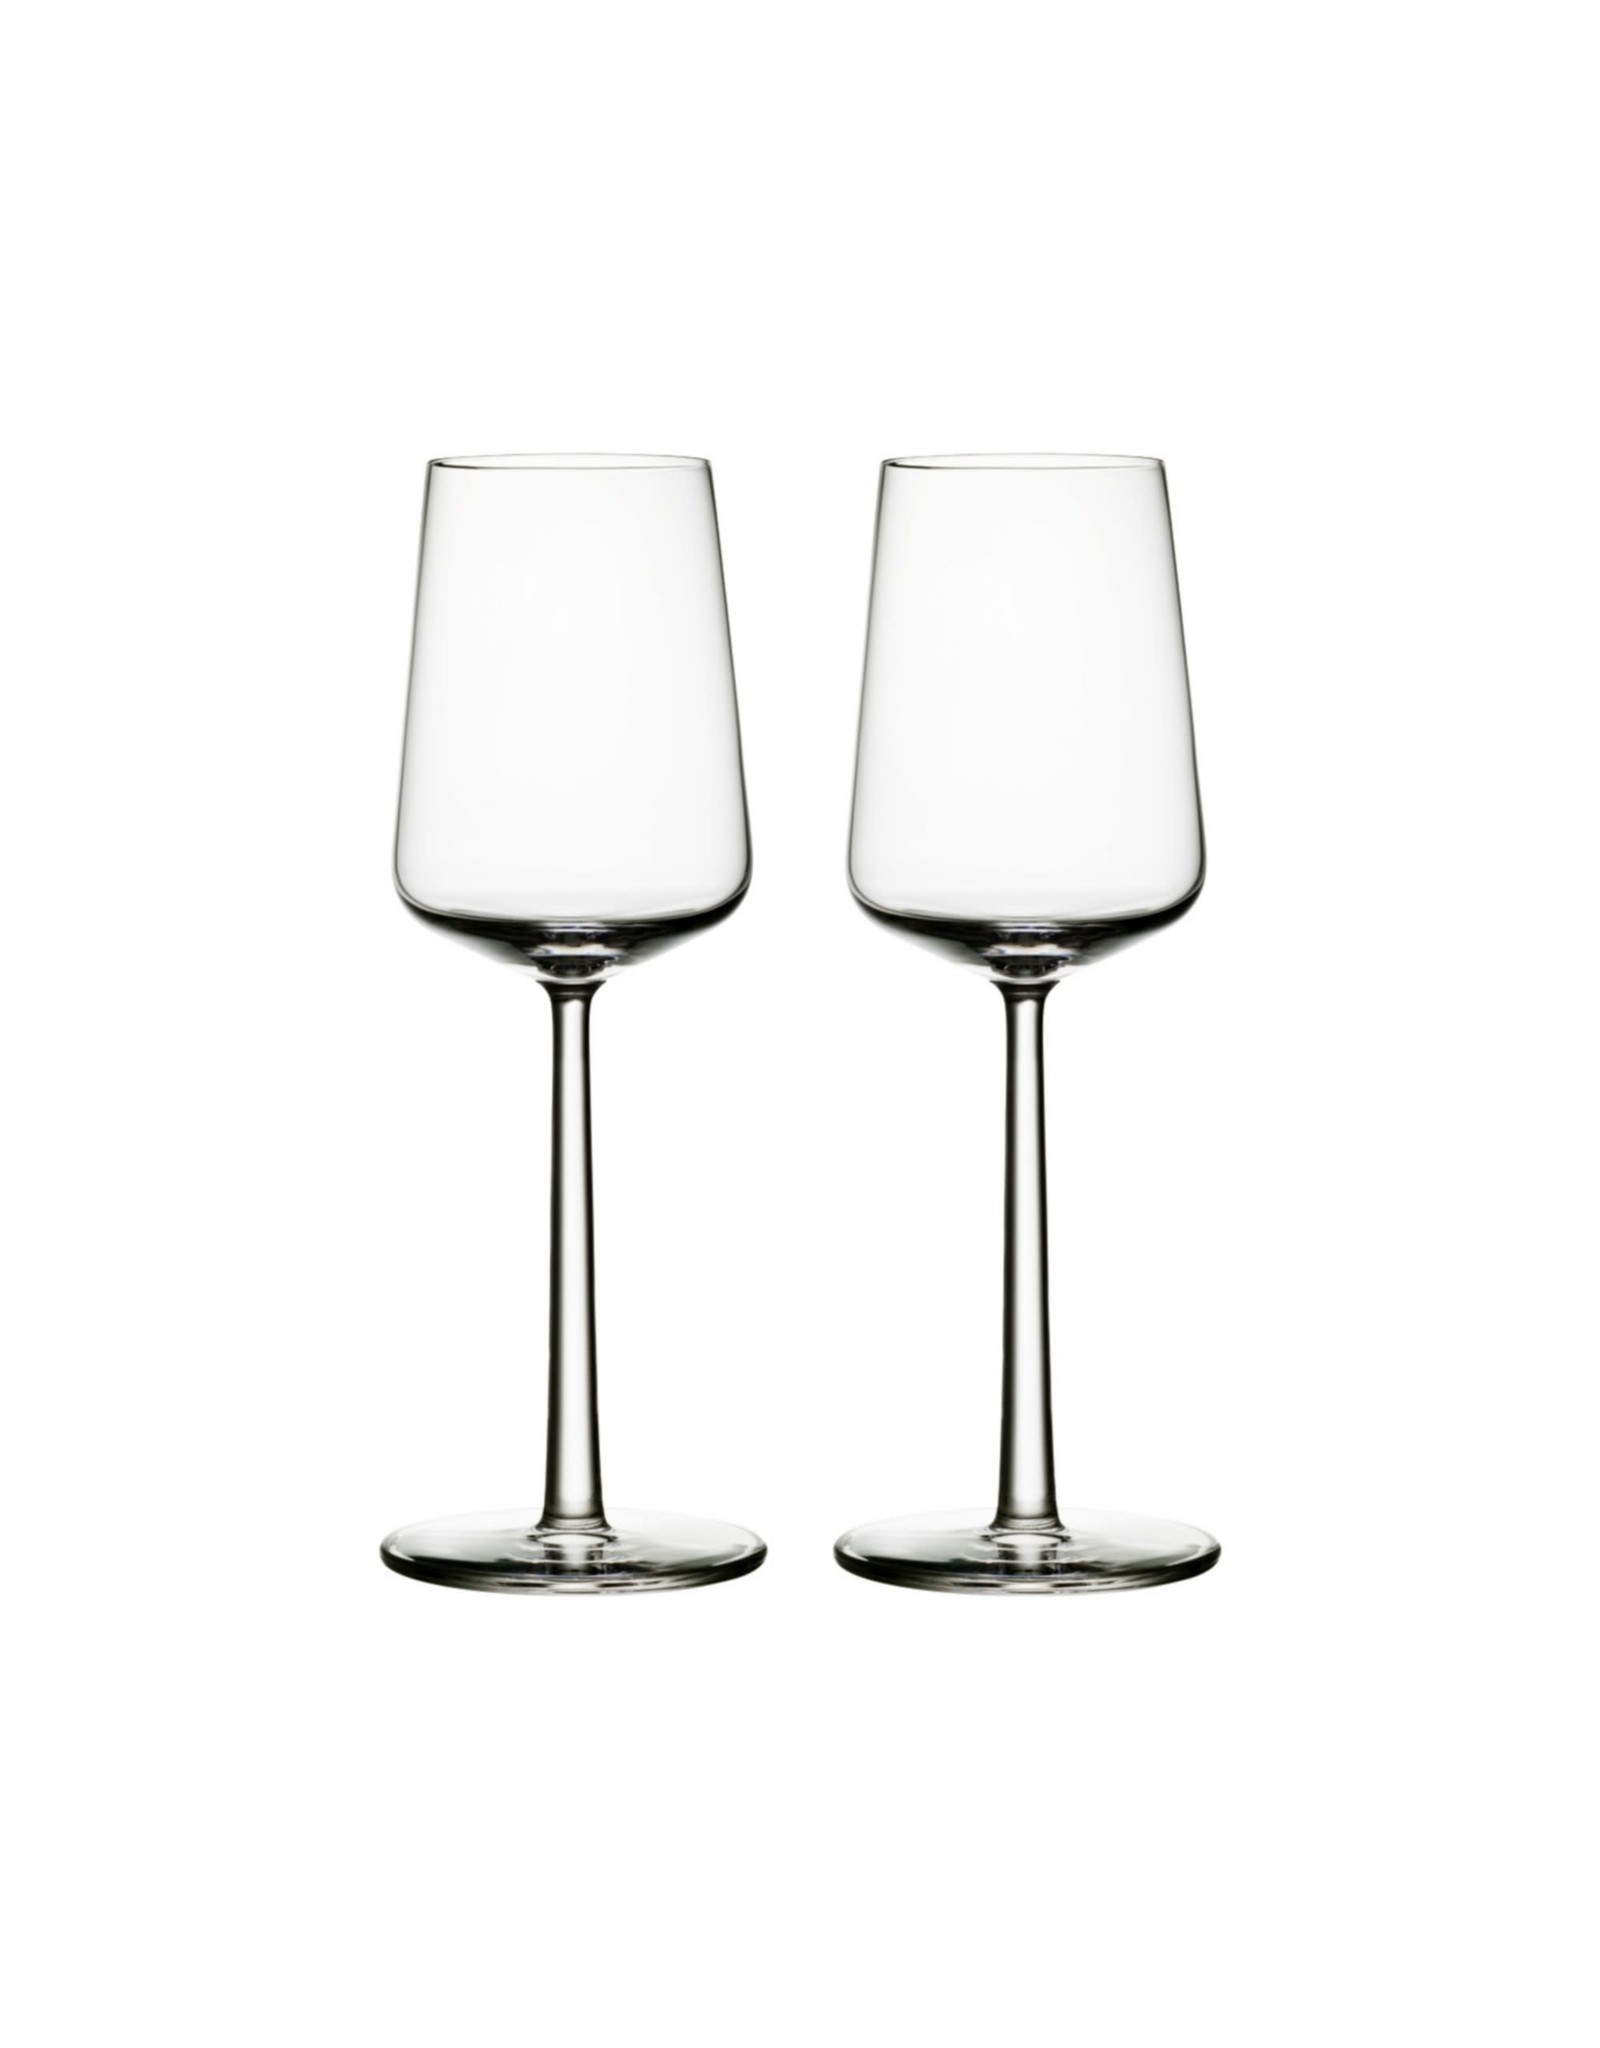 Essence White Wine Glass, set of 2